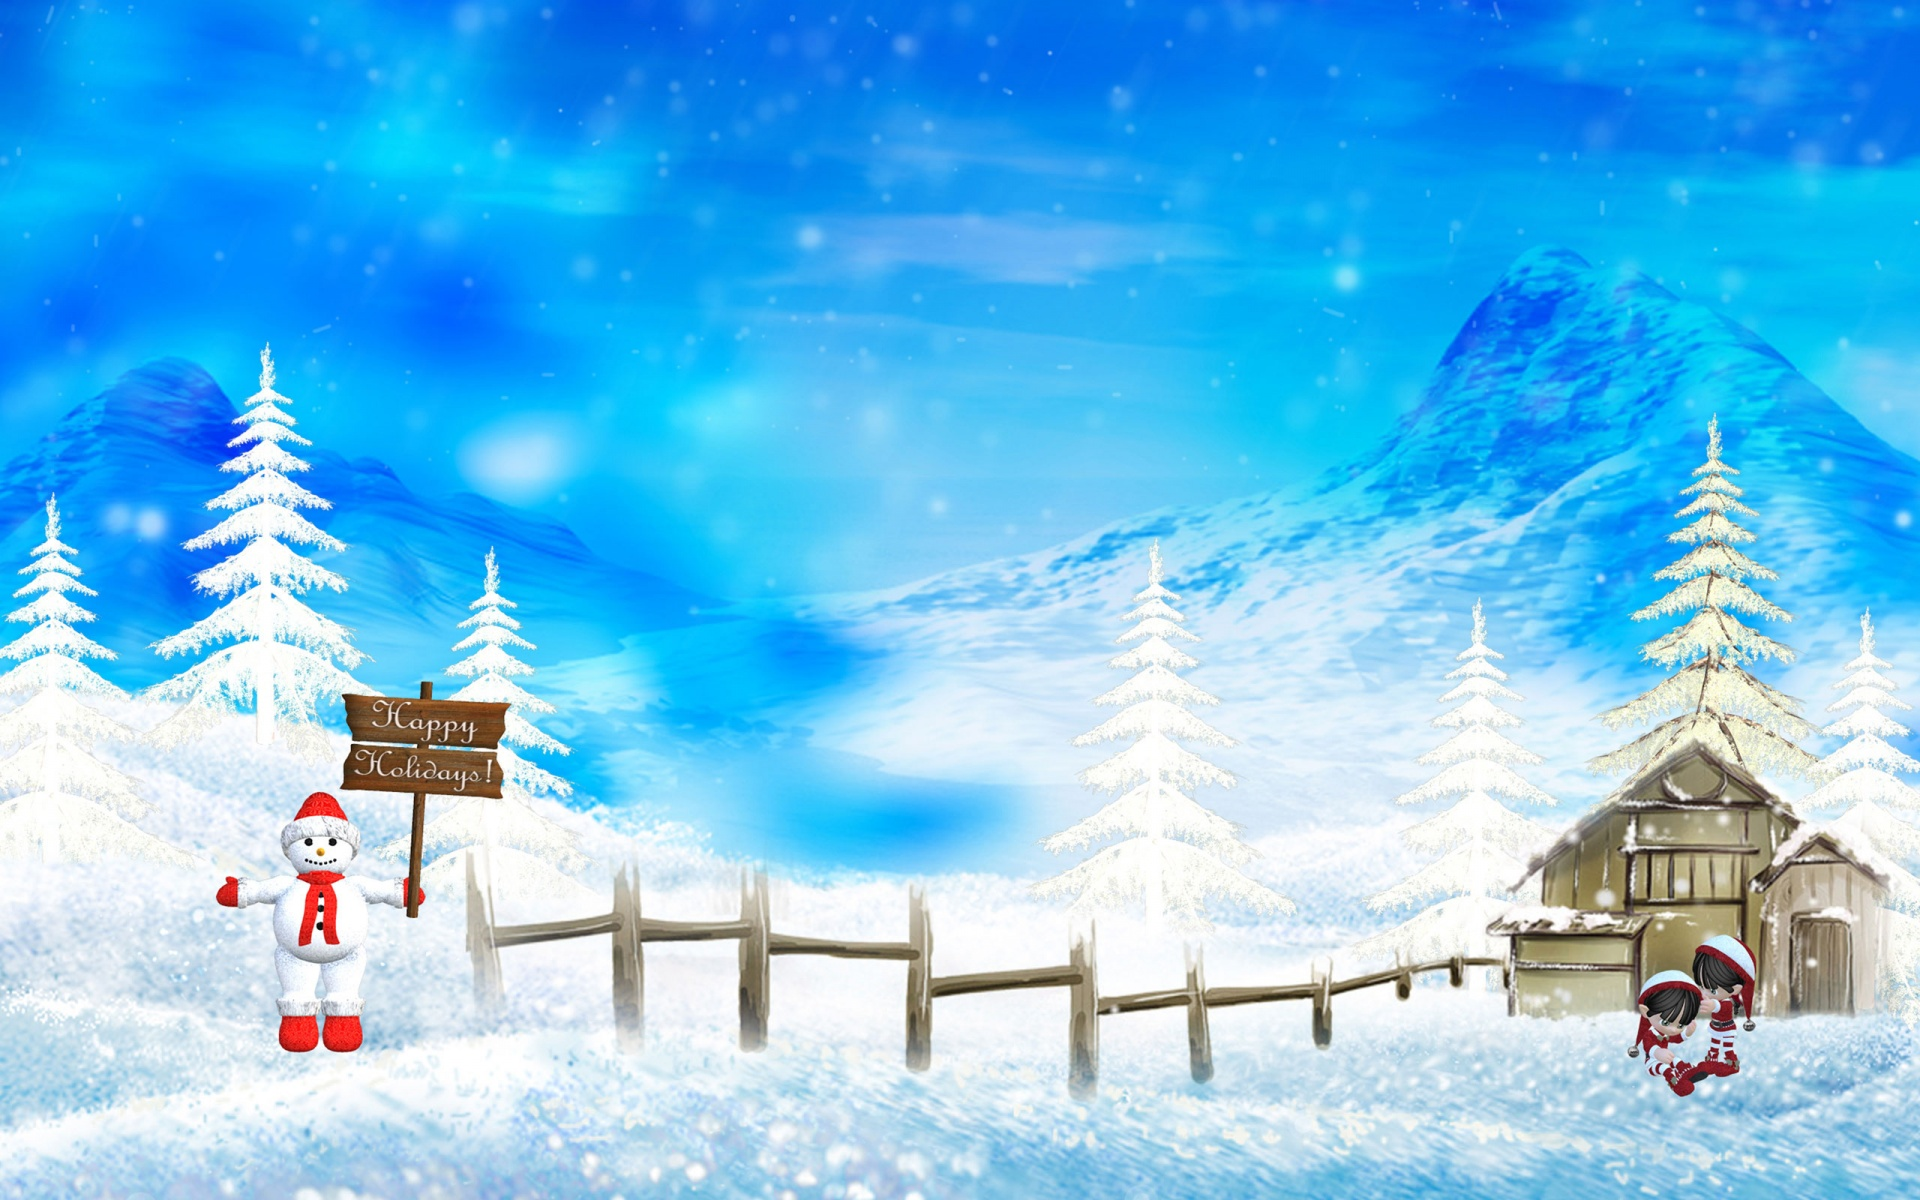 merry christmas wallpapers winter